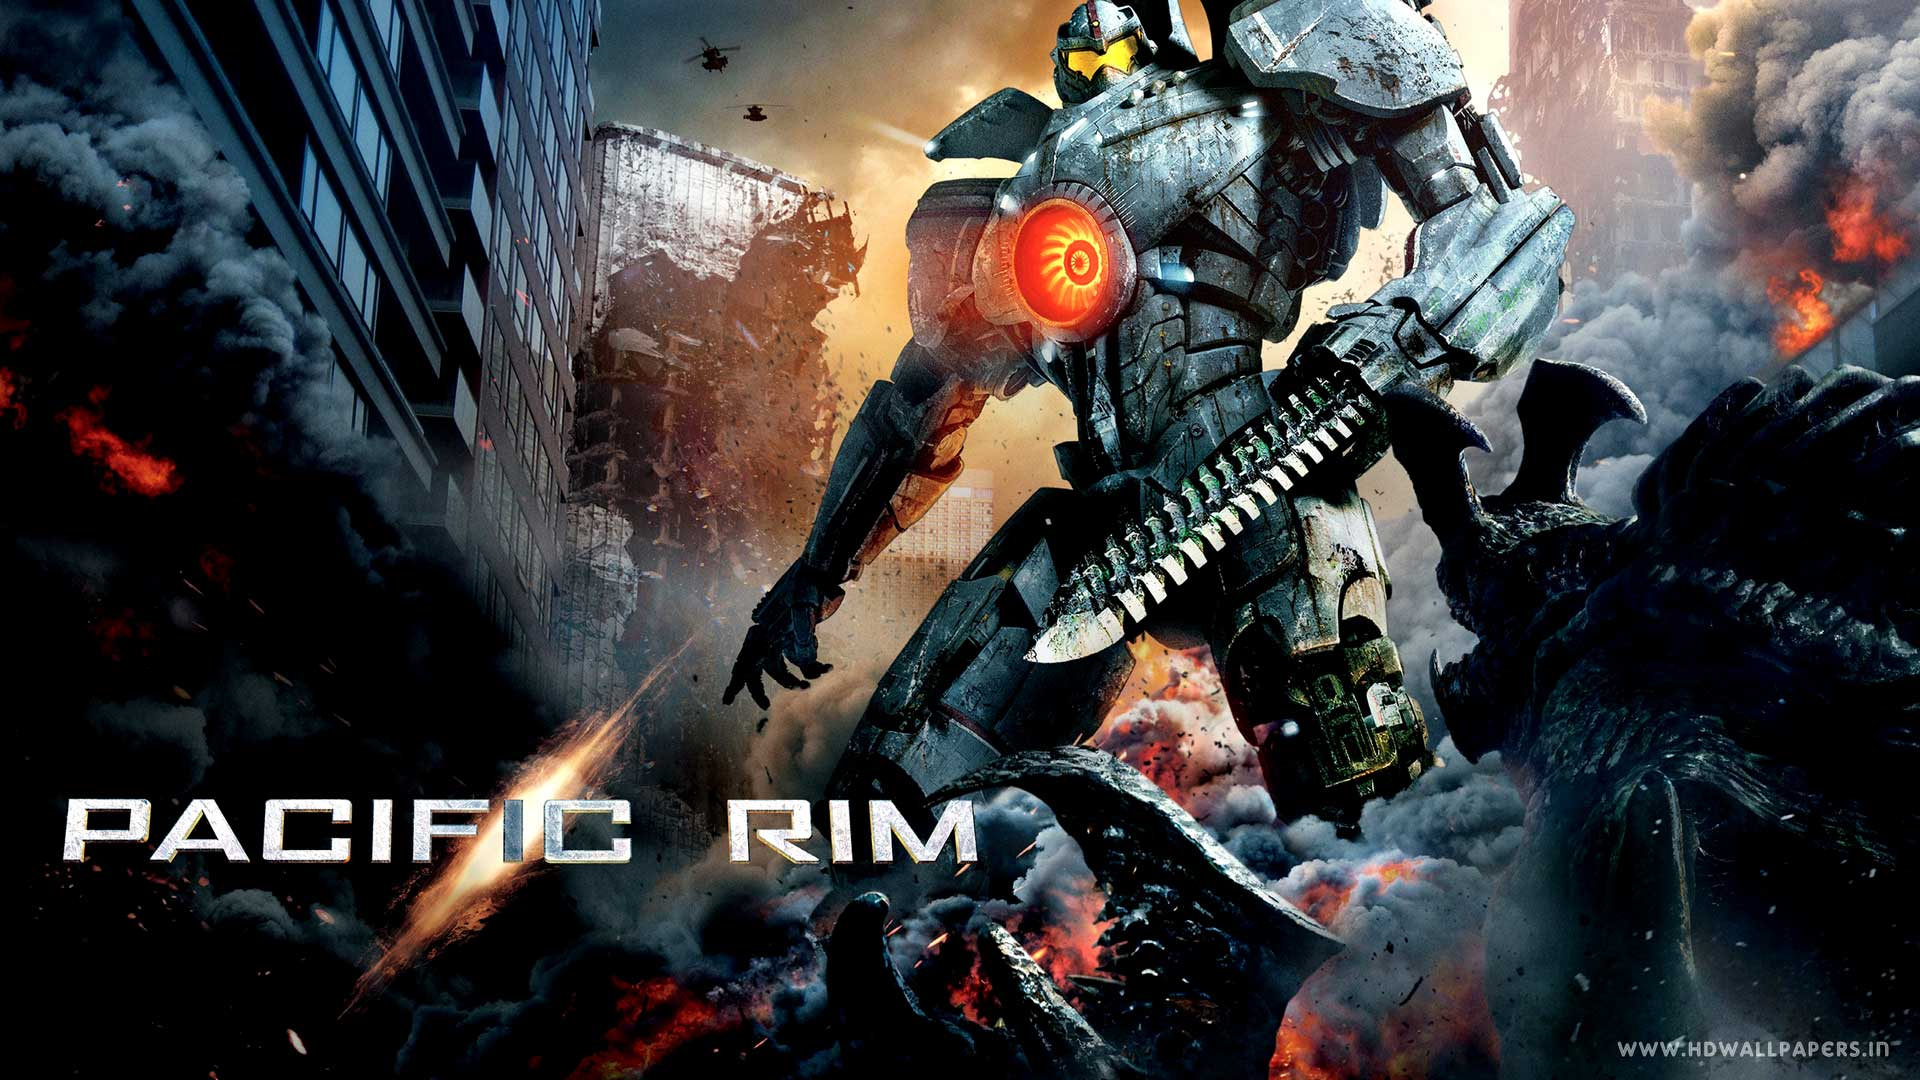 heroes characters wallpapers  pacific rim wallpapers backgrounds free1 1920x1080